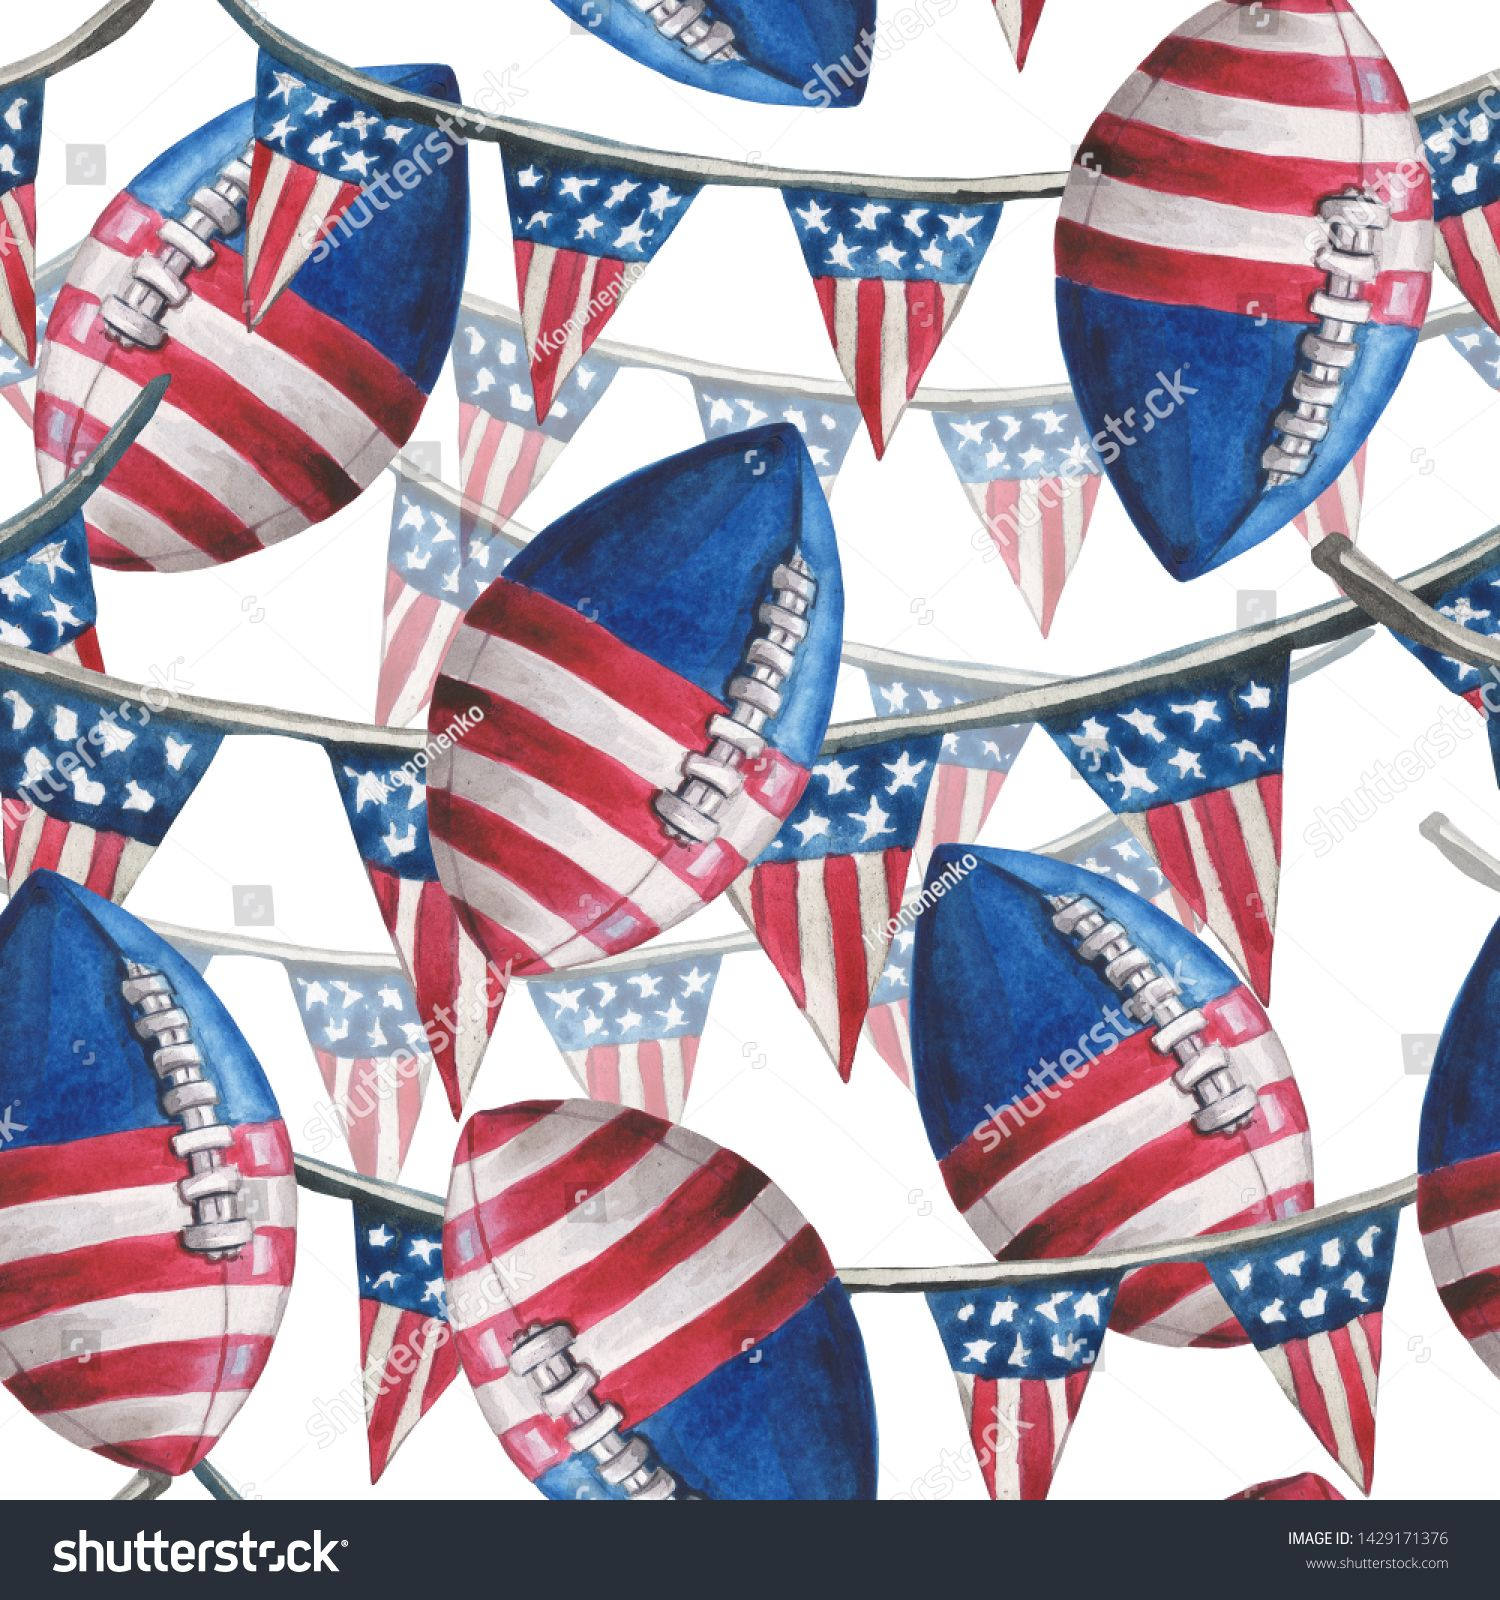 Watercolor Seamless Pattern Of Stretch Marks With Flags And Balls For American Football In The Colors O In 2020 Seamless Patterns Stock Illustration Patriotic Holidays